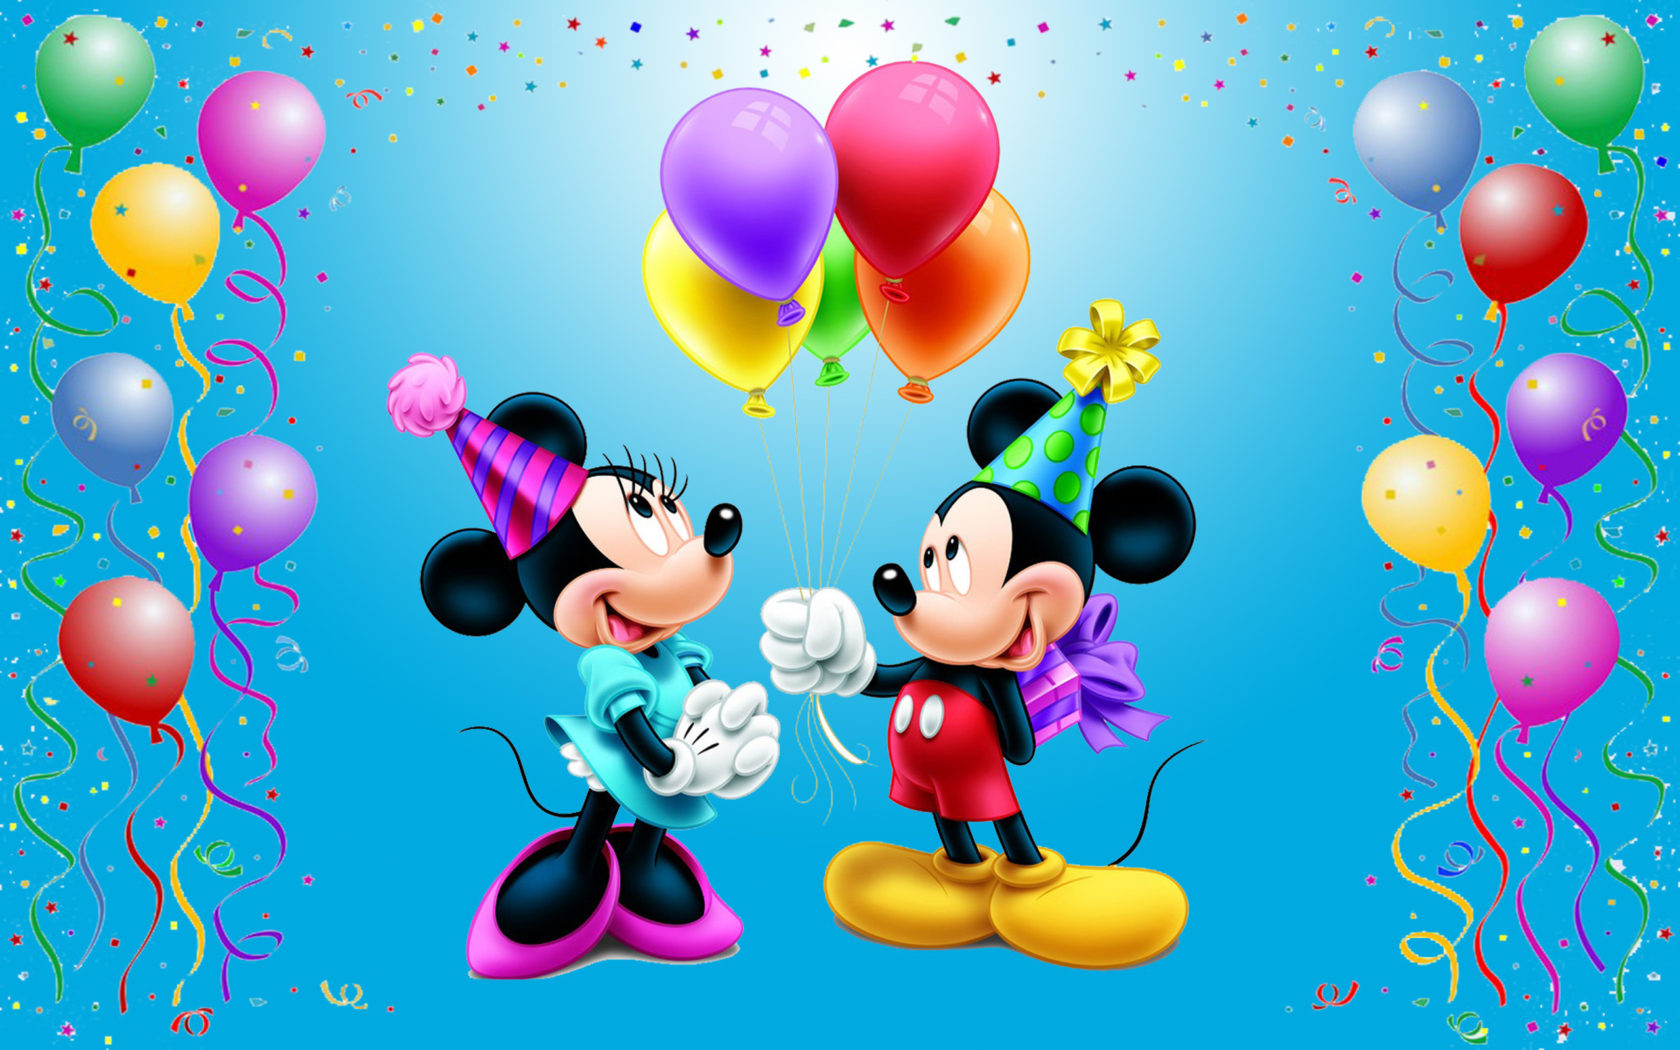 Disney Quotes Iphone 5 Wallpaper Mickey Mouse Happy Birthday Minnie Celebration Balloons